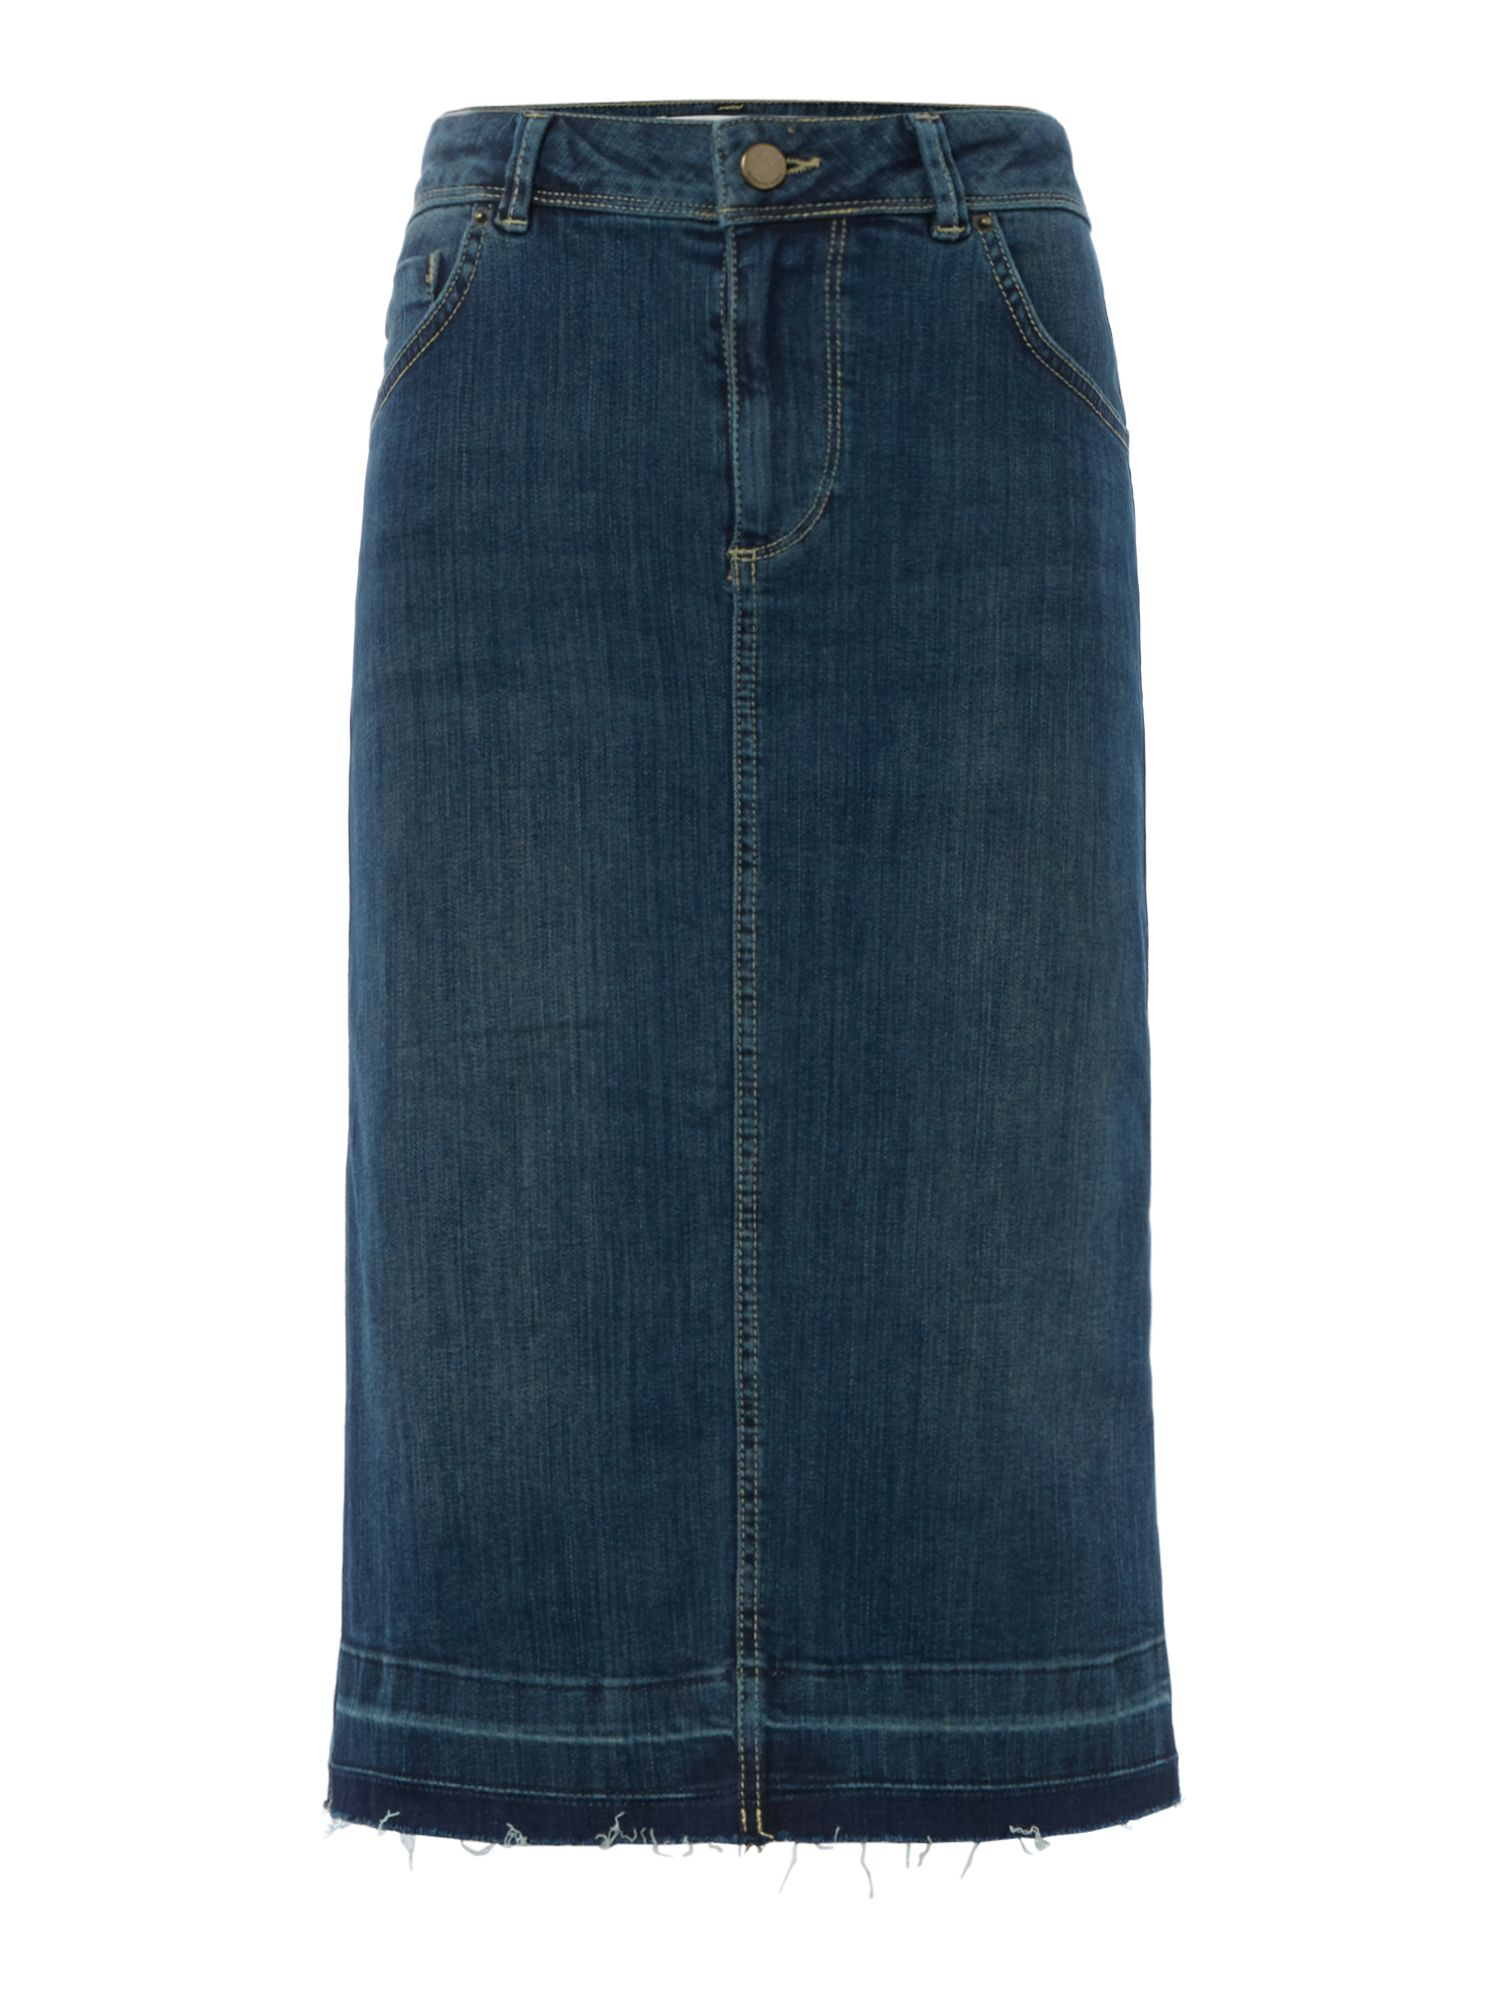 Maison De Nimes Limoges Denim Skirt, Denim Vintage